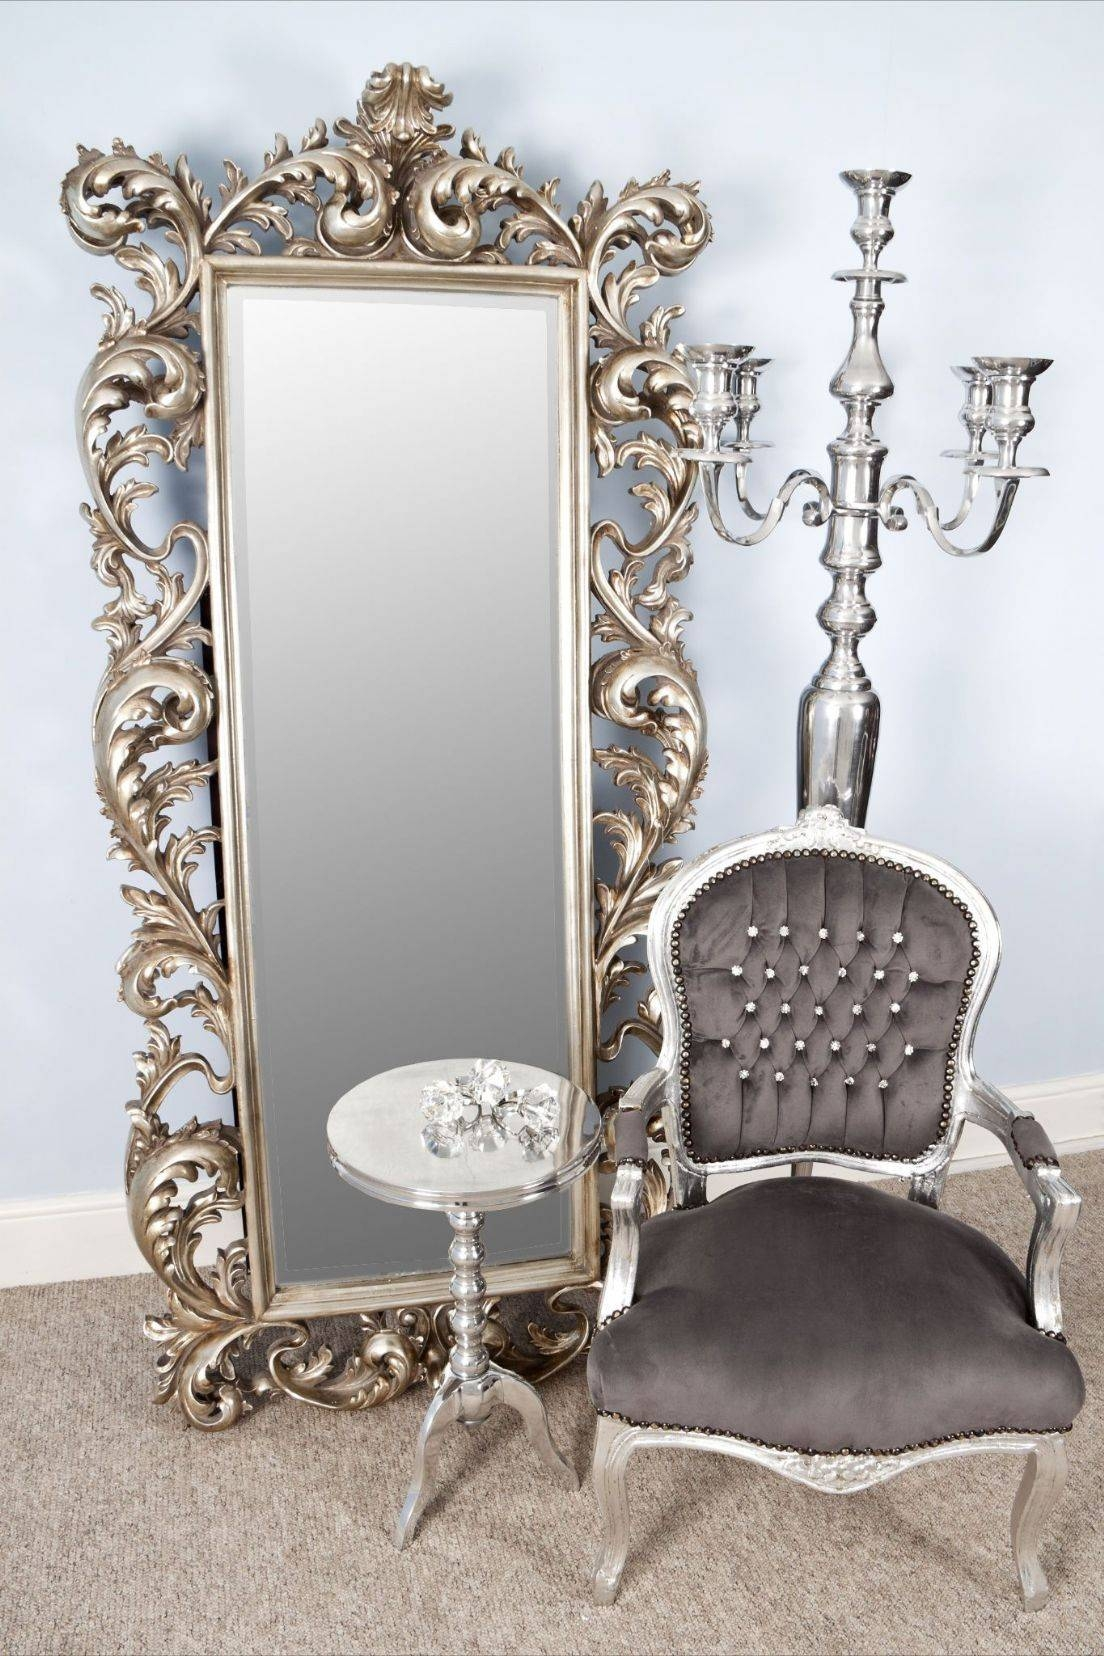 Vintage Full Length Mirror Dublin | Vanity Decoration Intended For Large Silver Vintage Mirrors (View 13 of 15)